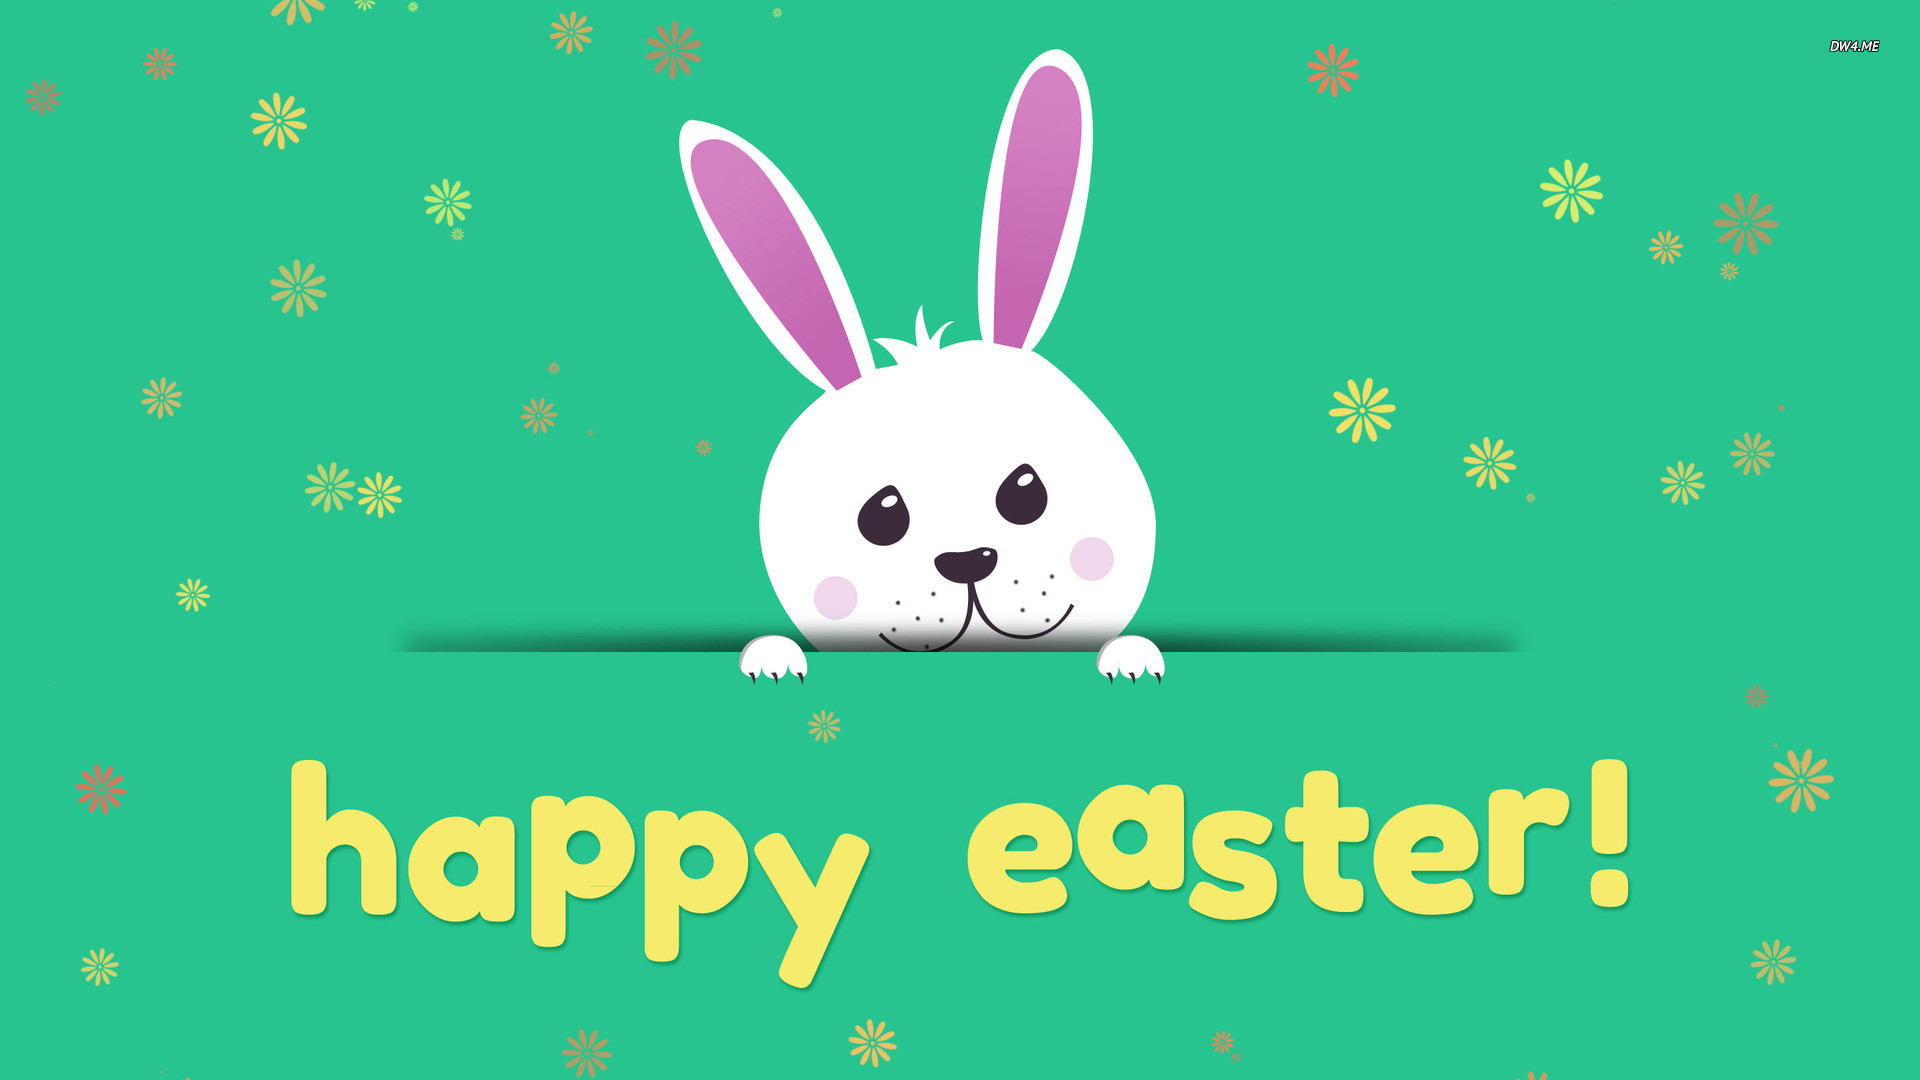 Easter Bunny Desktop Wallpaper 55 Images